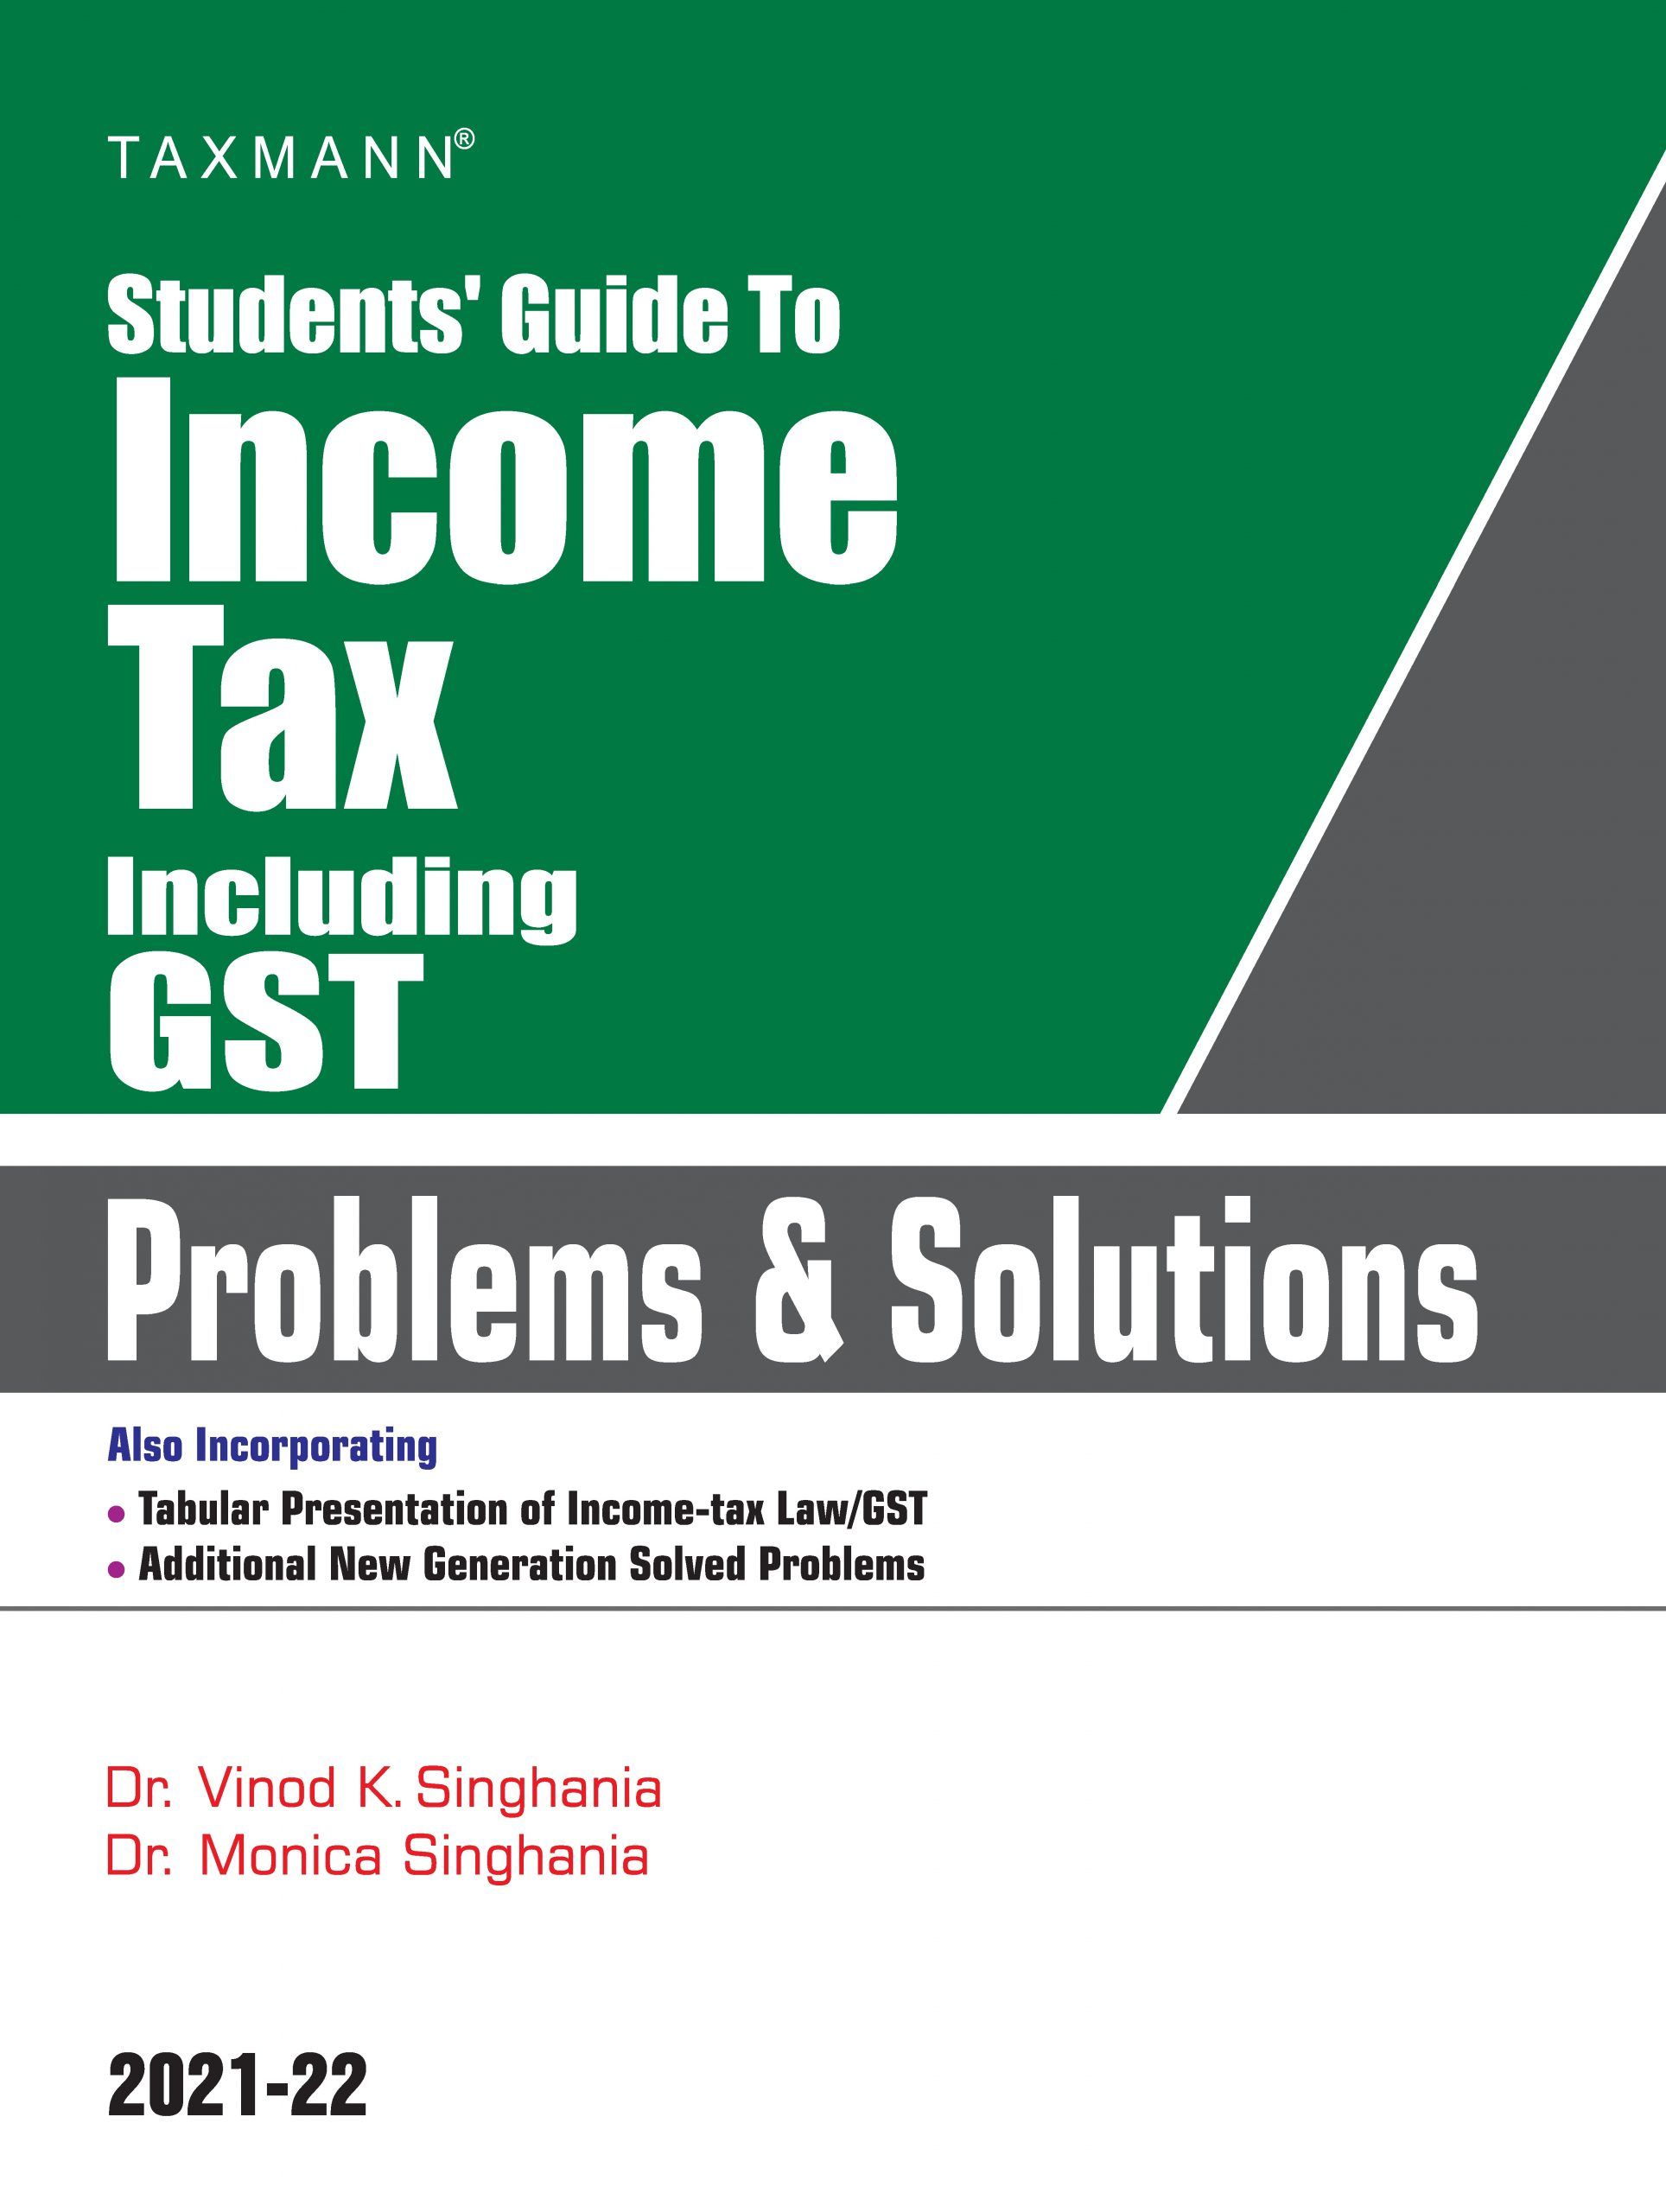 Taxmann Students' Guide to Income Tax including GST Problems and Solutions by Dr. Vinod Singhania and Dr. Monica Singhania 2021